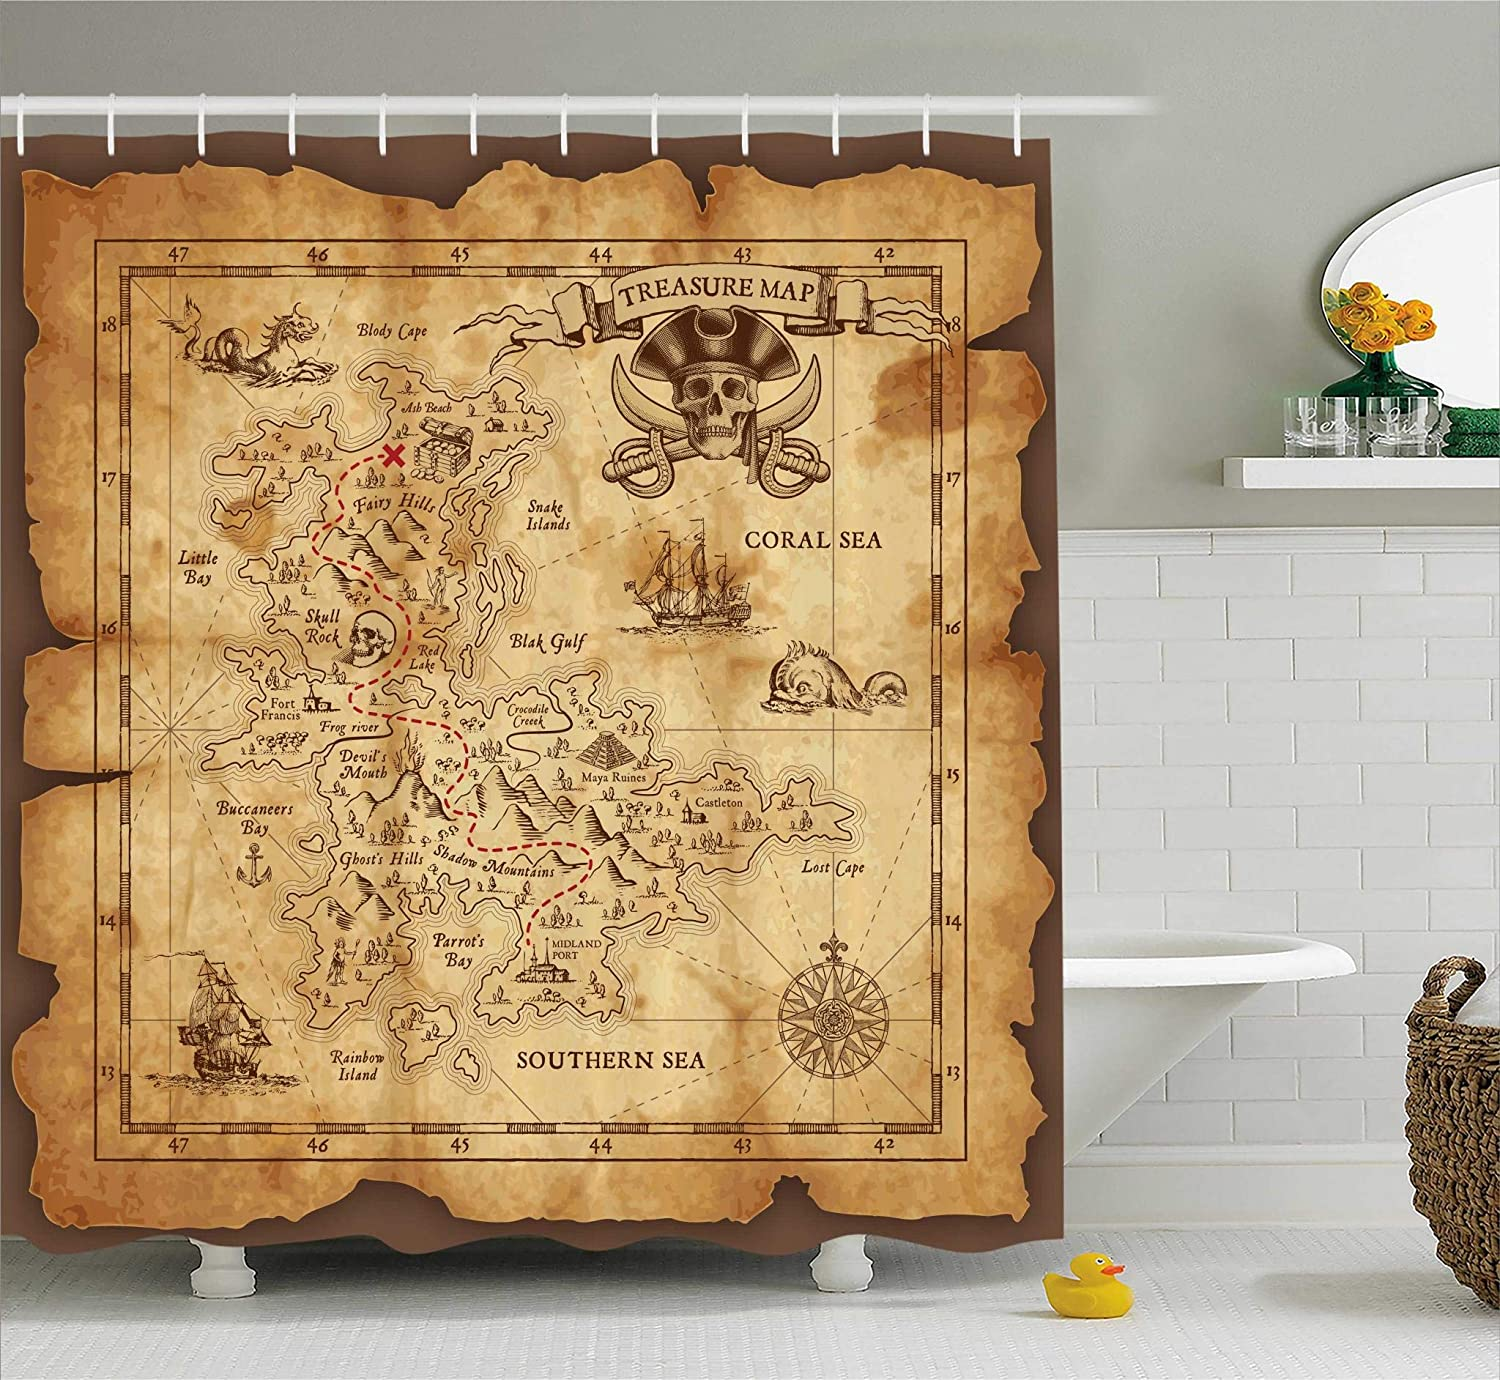 Ambesonne Island Map Decor Shower Curtain Set, Super Detailed Treasure Map Grungy Rustic Pirates Gold Secret Sea History Theme, Bathroom Accessories, 75 Inches Long, Beige Brown